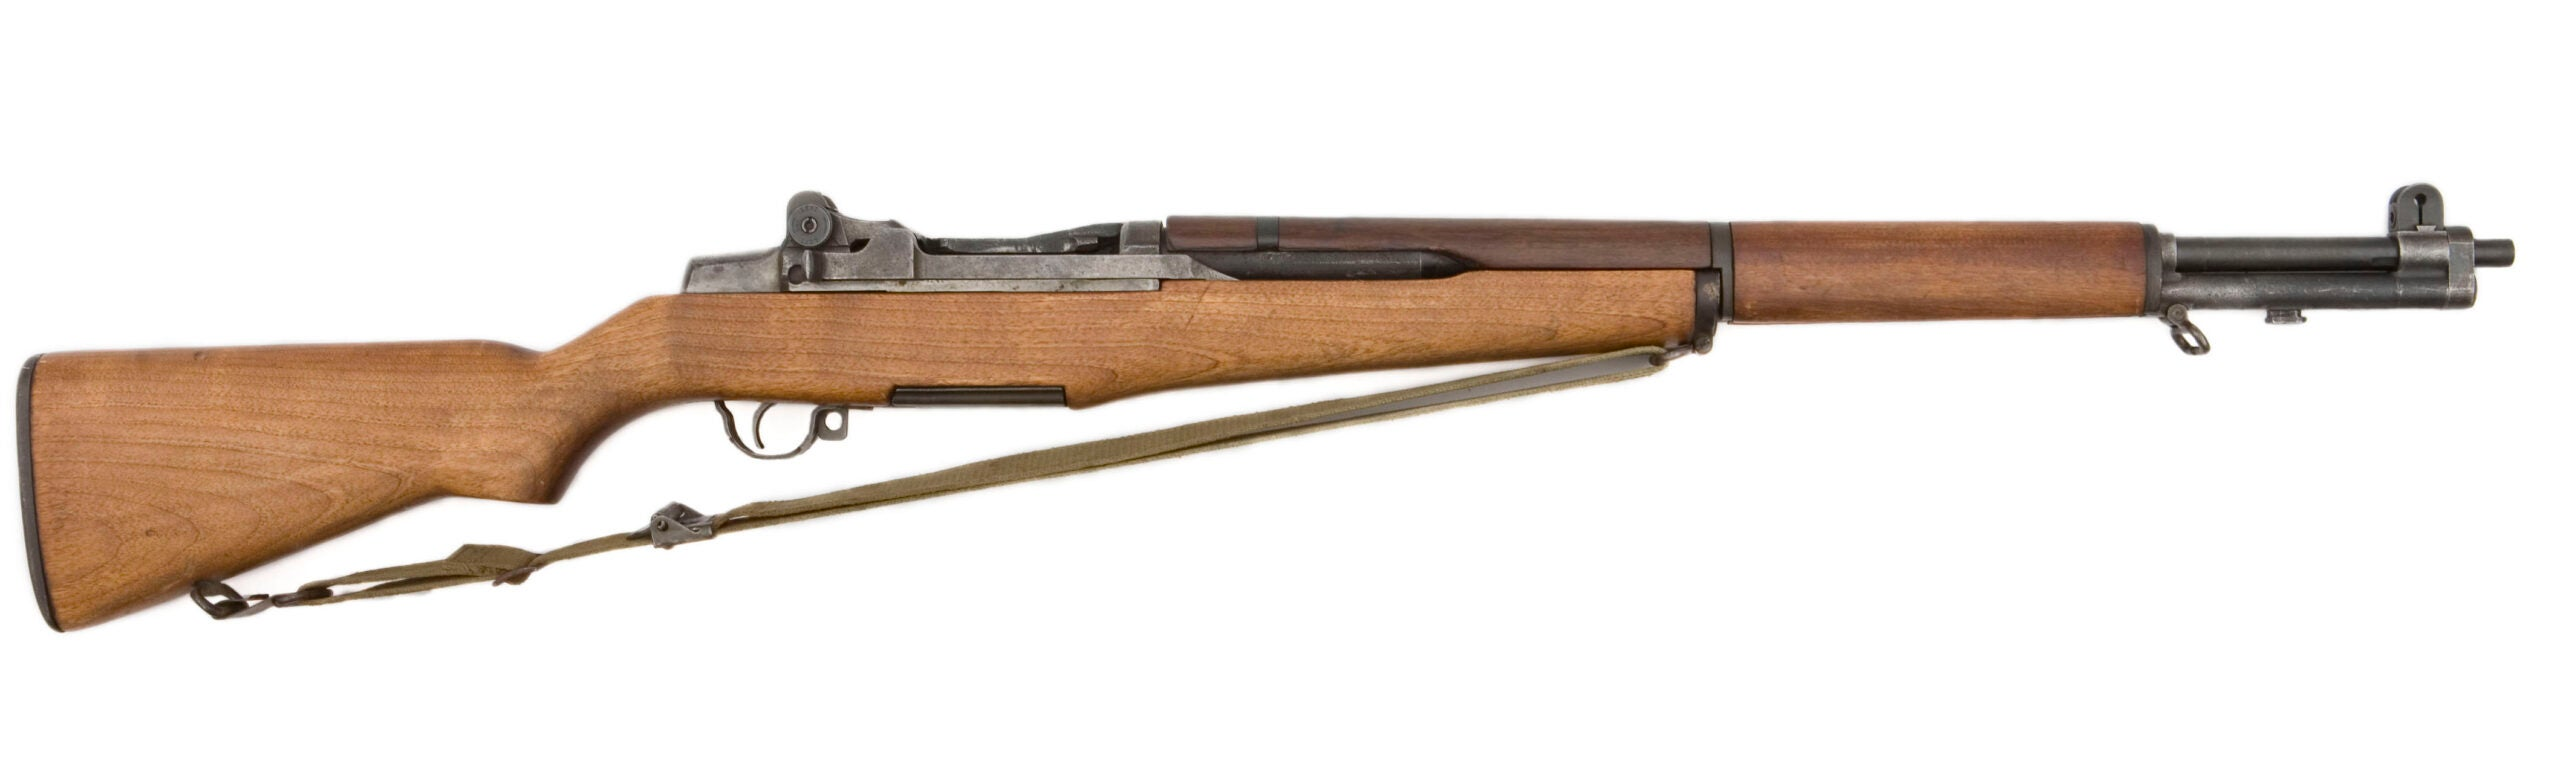 Gun Stories of the Week: Washington Gun Law Forces Museum To Remove WWII Rifles Exhibit